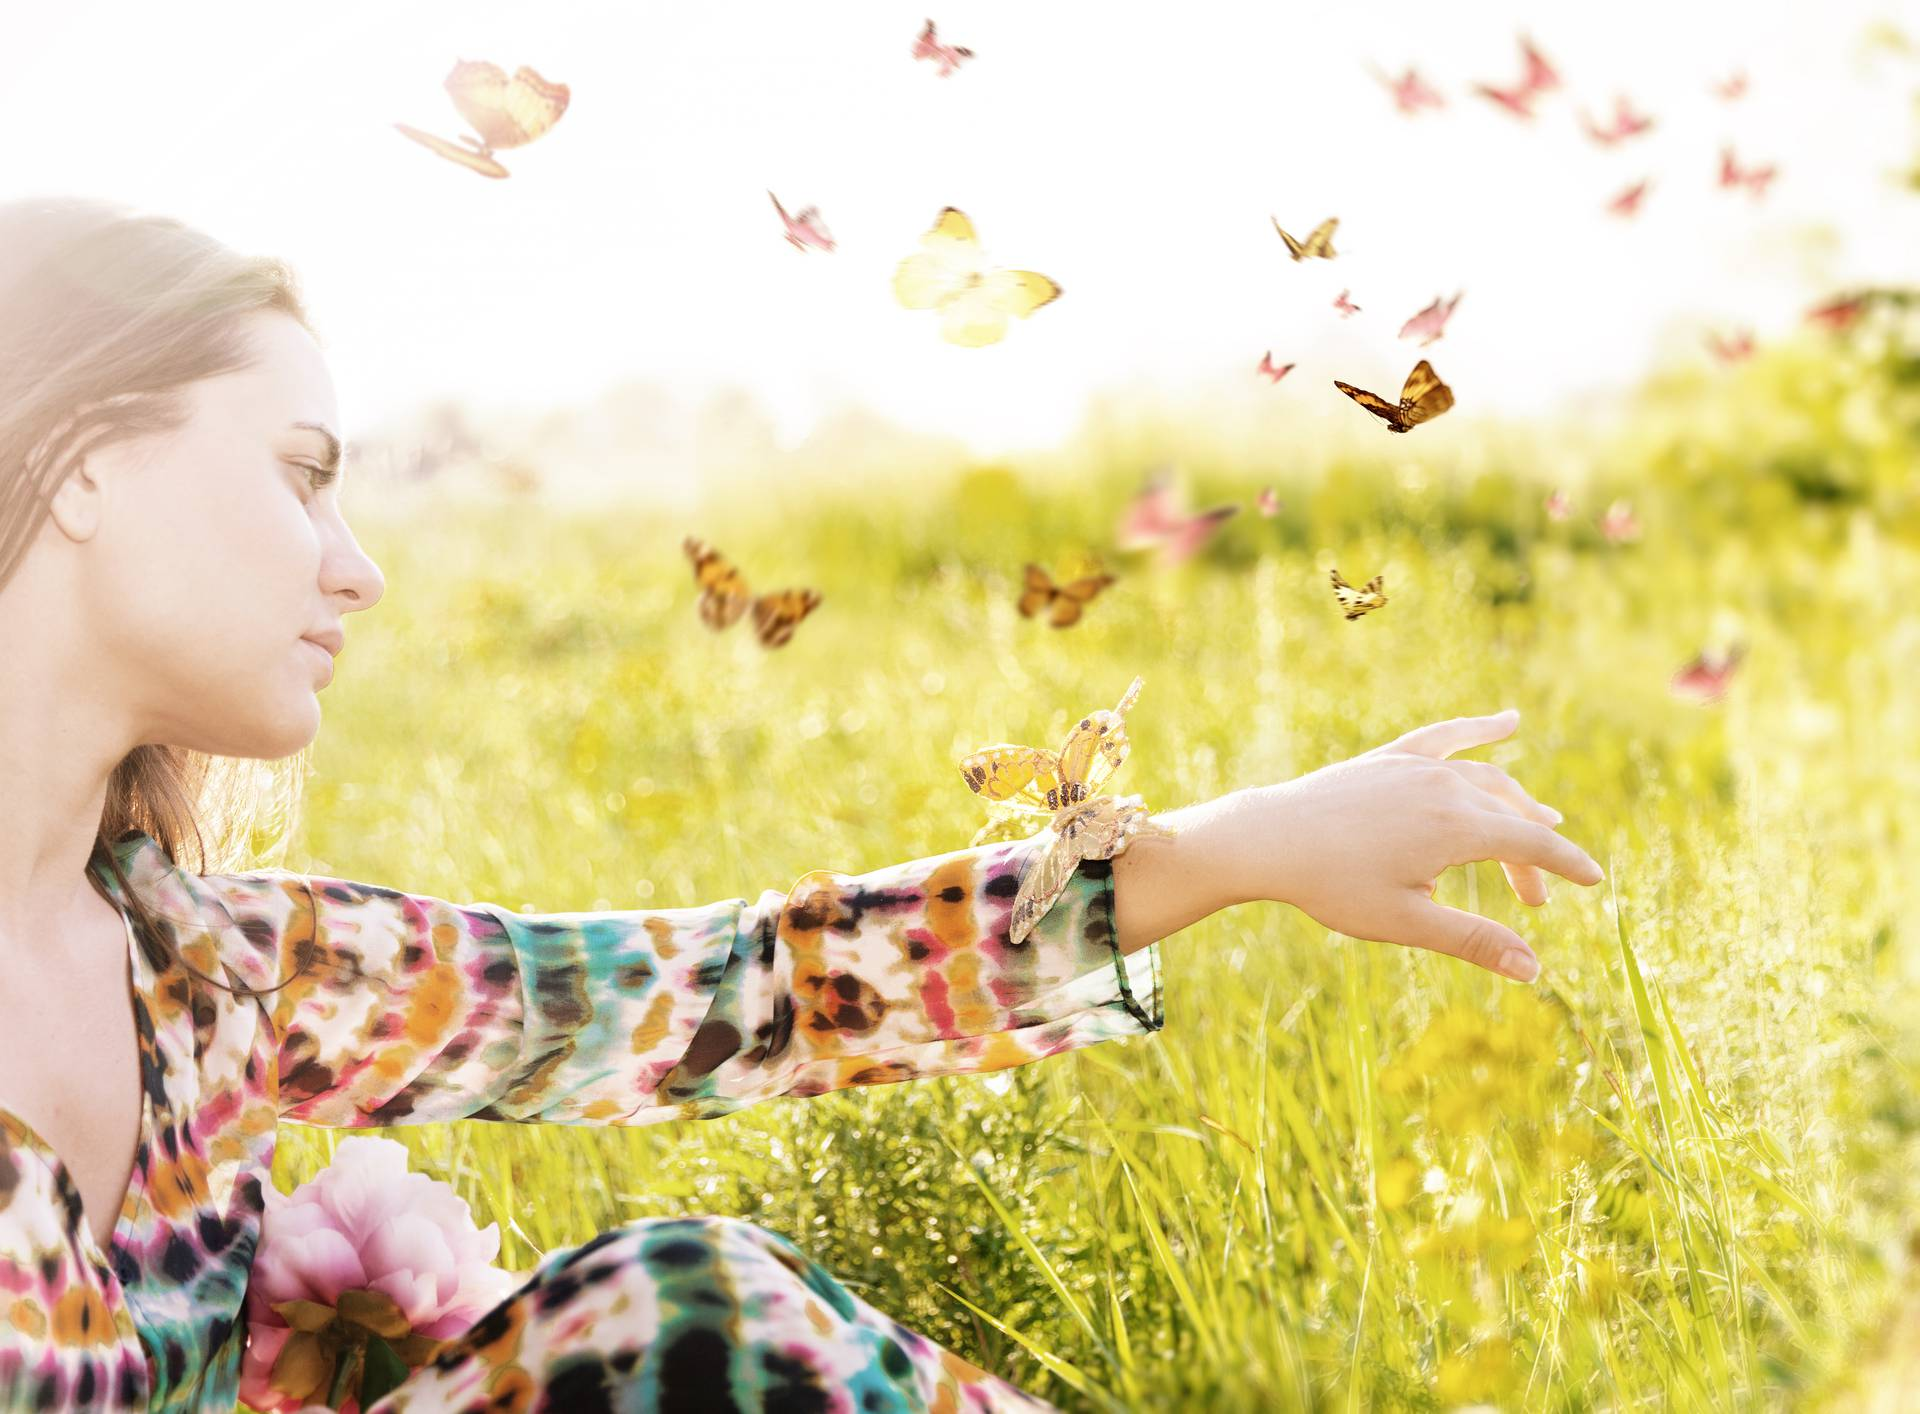 Girl sitting in a meadow in swarm of flitting butterflies.